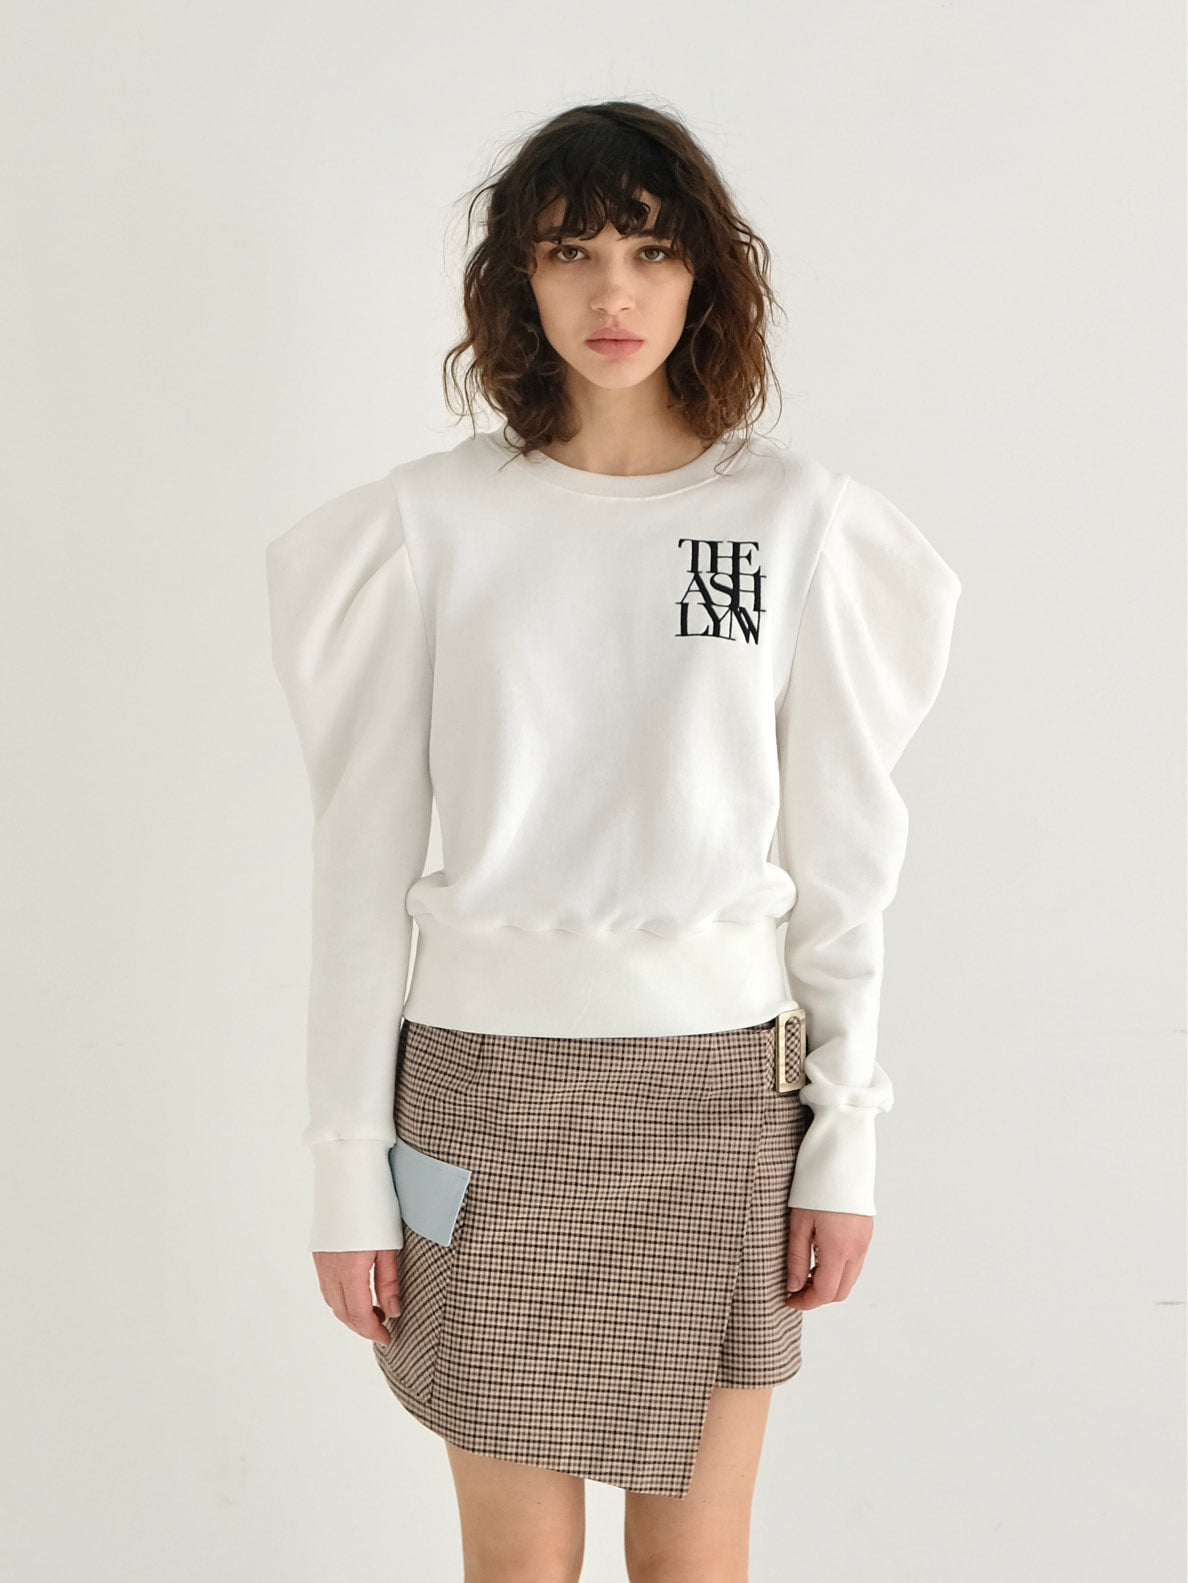 NEW KATE SWEATSHIRT_B&W (2 COLORS)